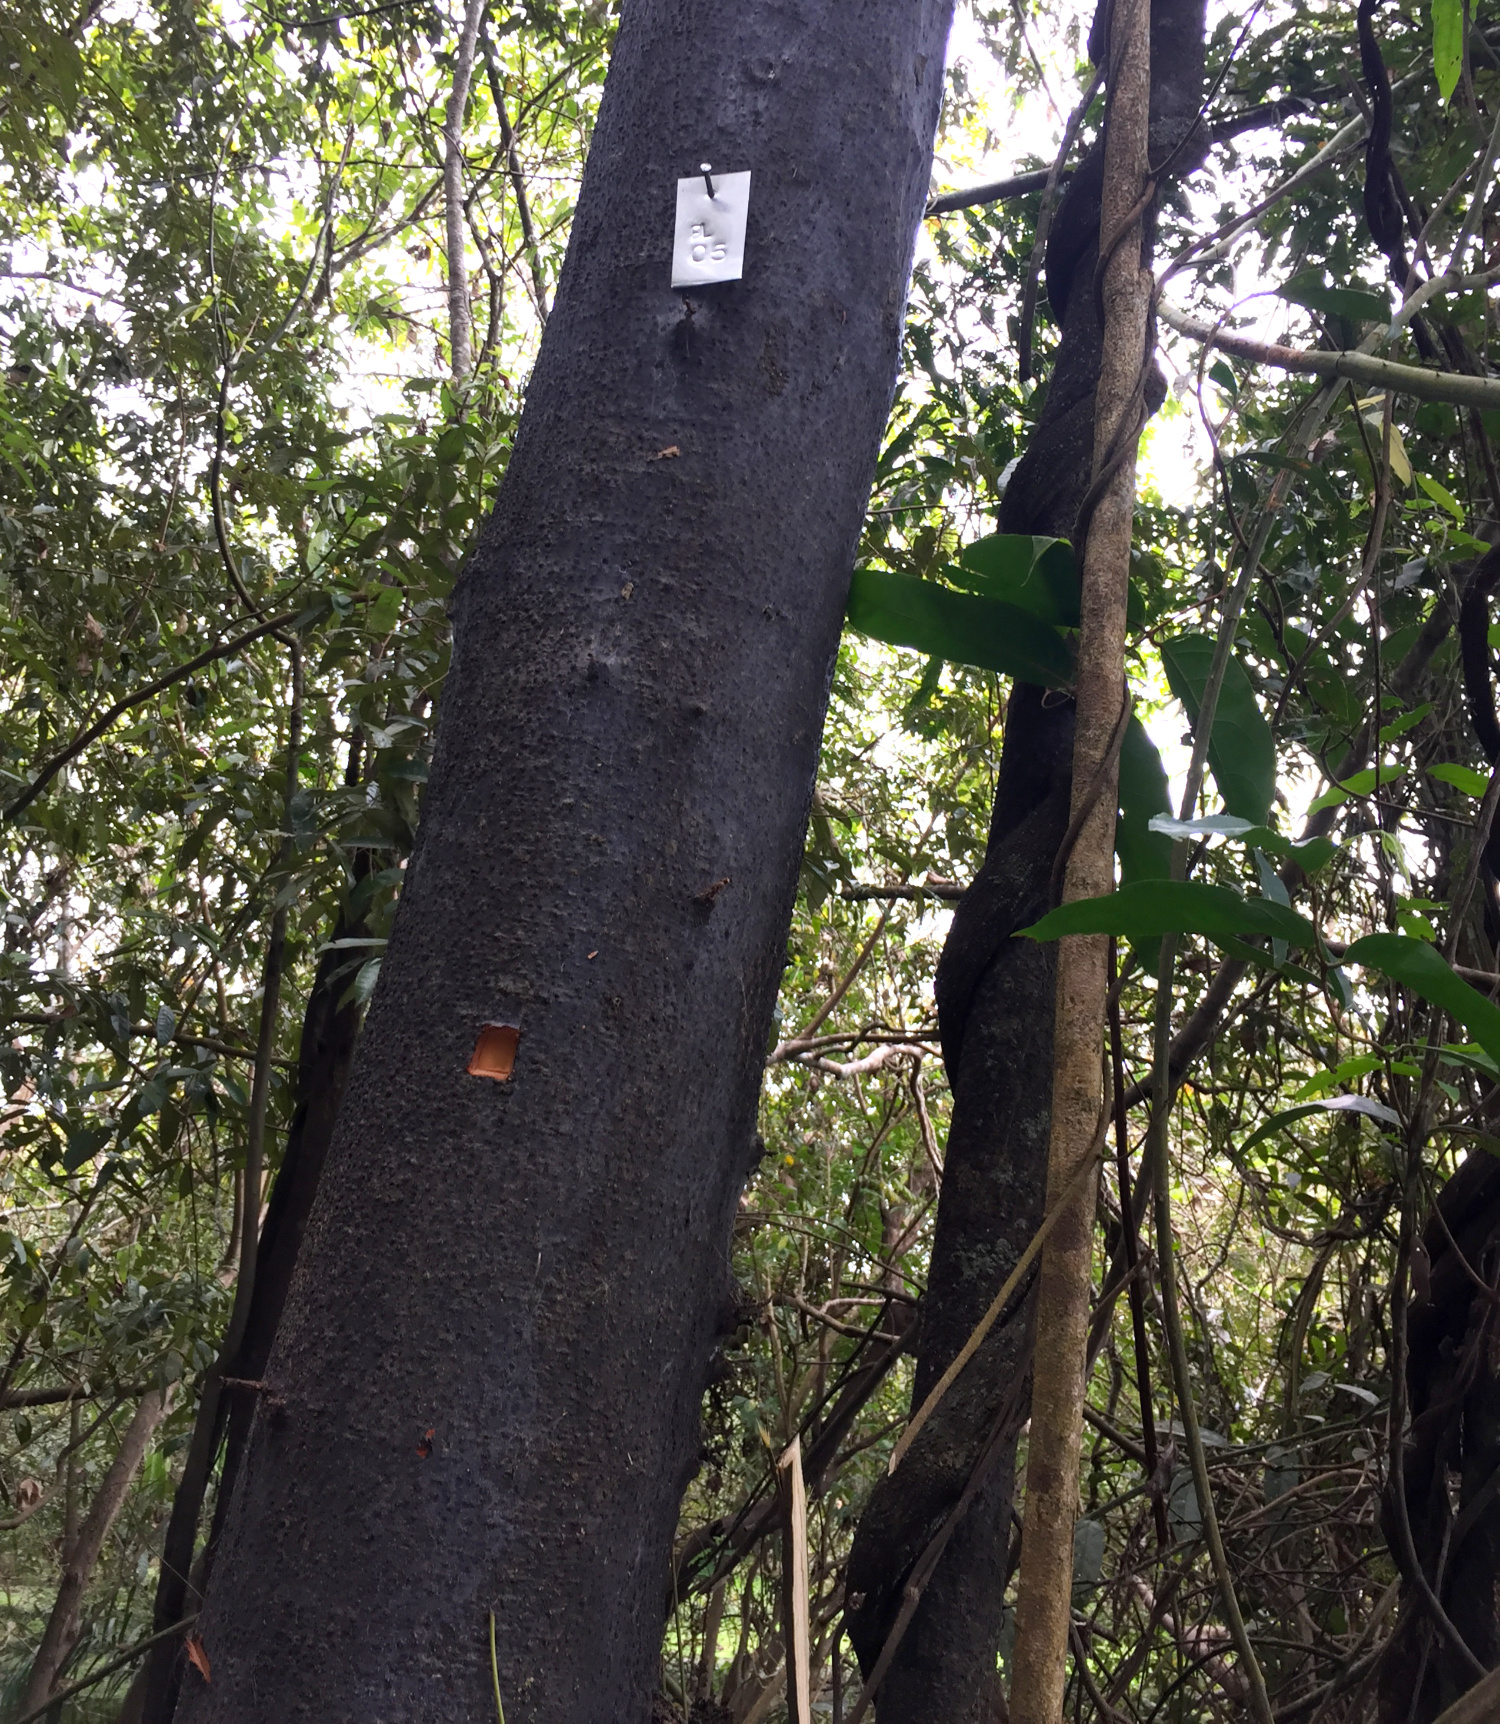 One of the Nectandra trees that the scientists analyzed tree rings from. © Flavia Durgante / KIT